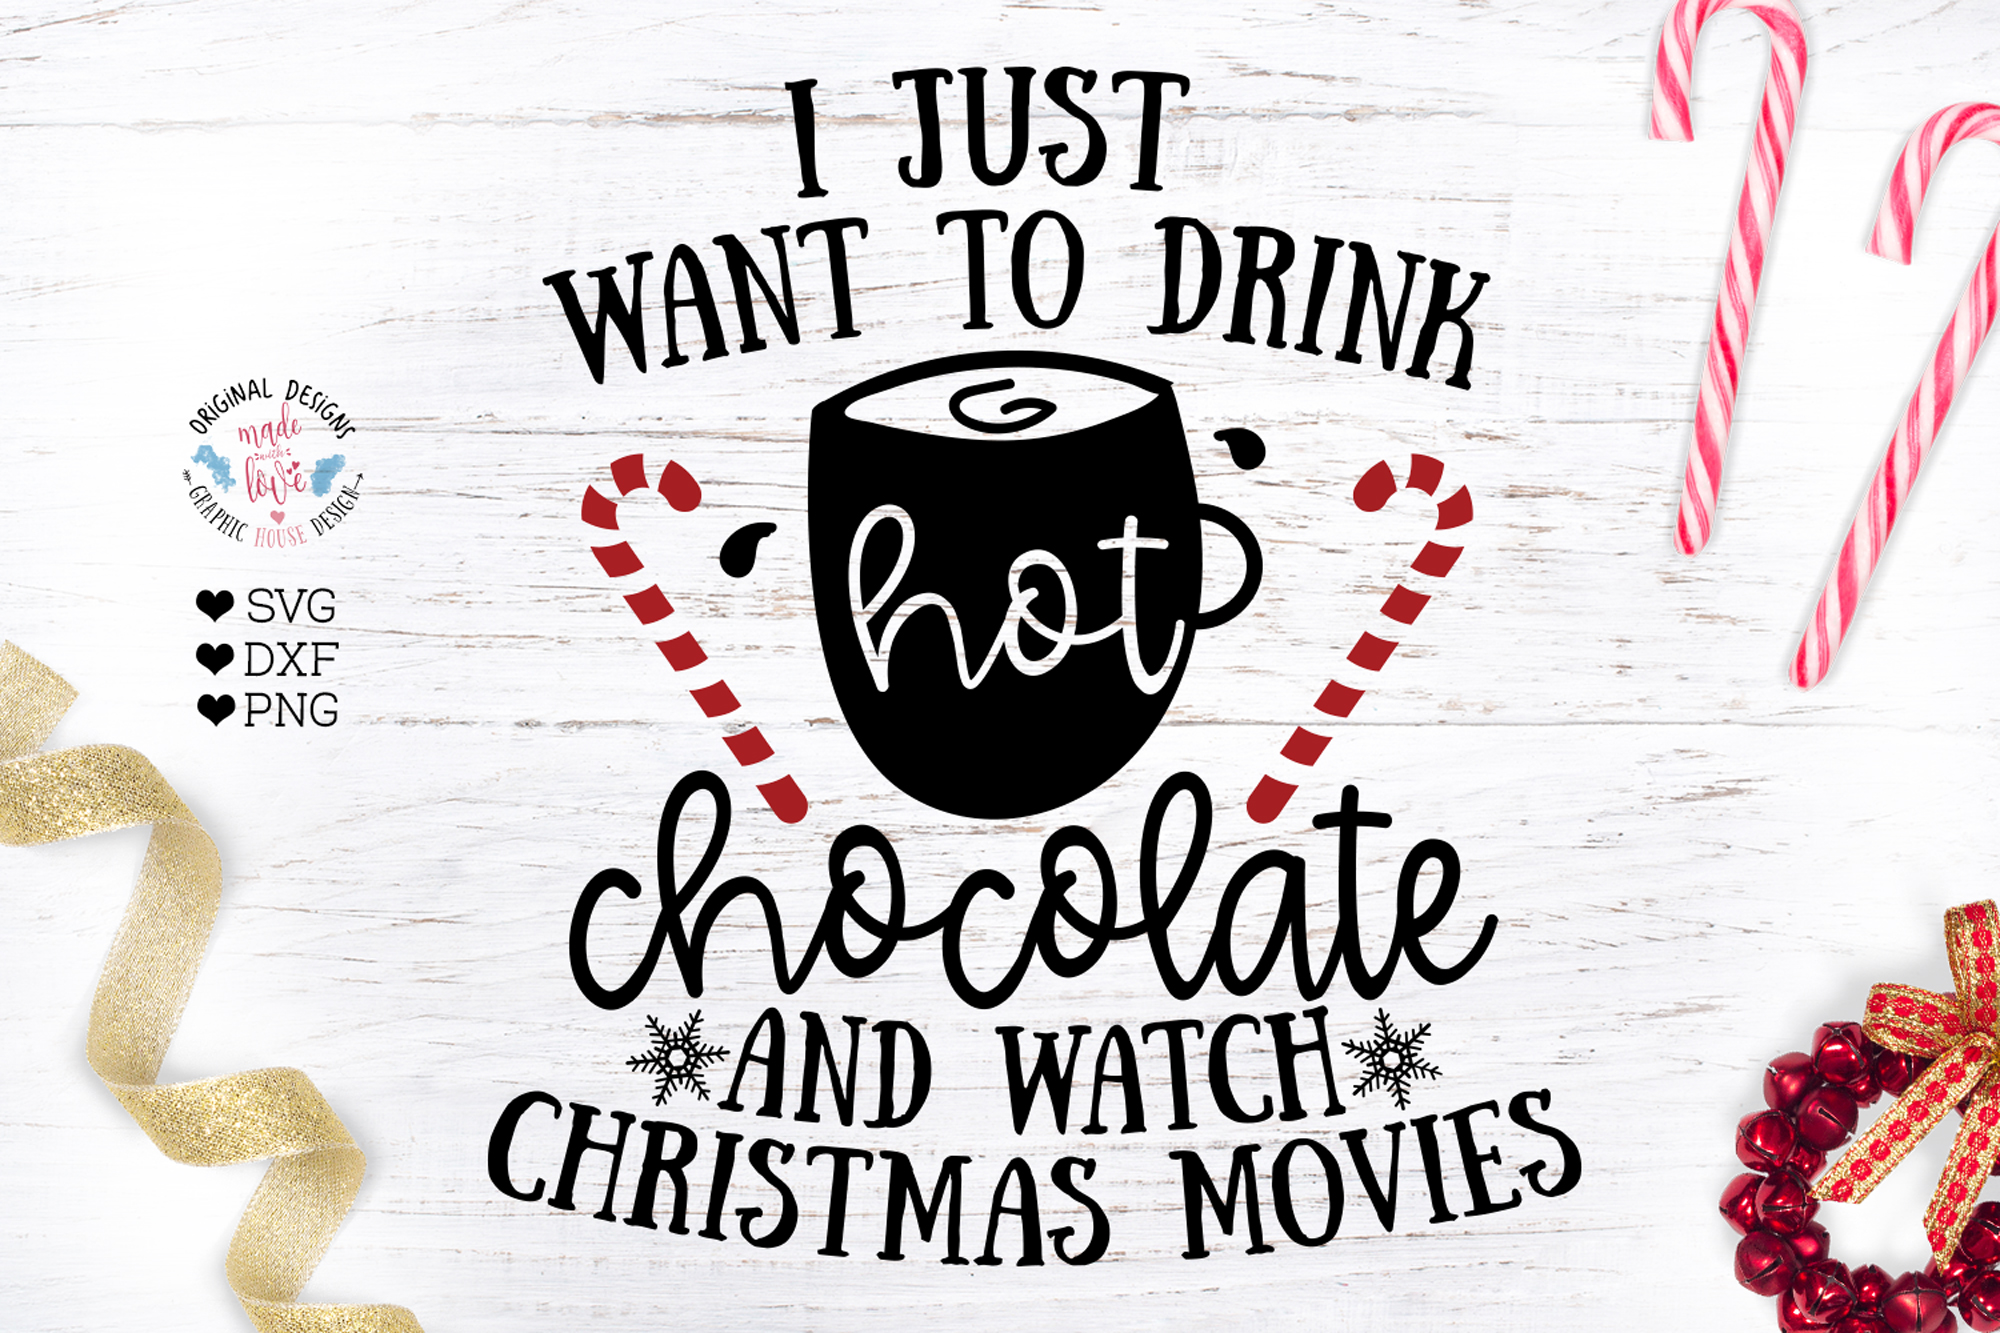 I just want to drink Chocolate and watch Christmas movies example image 1